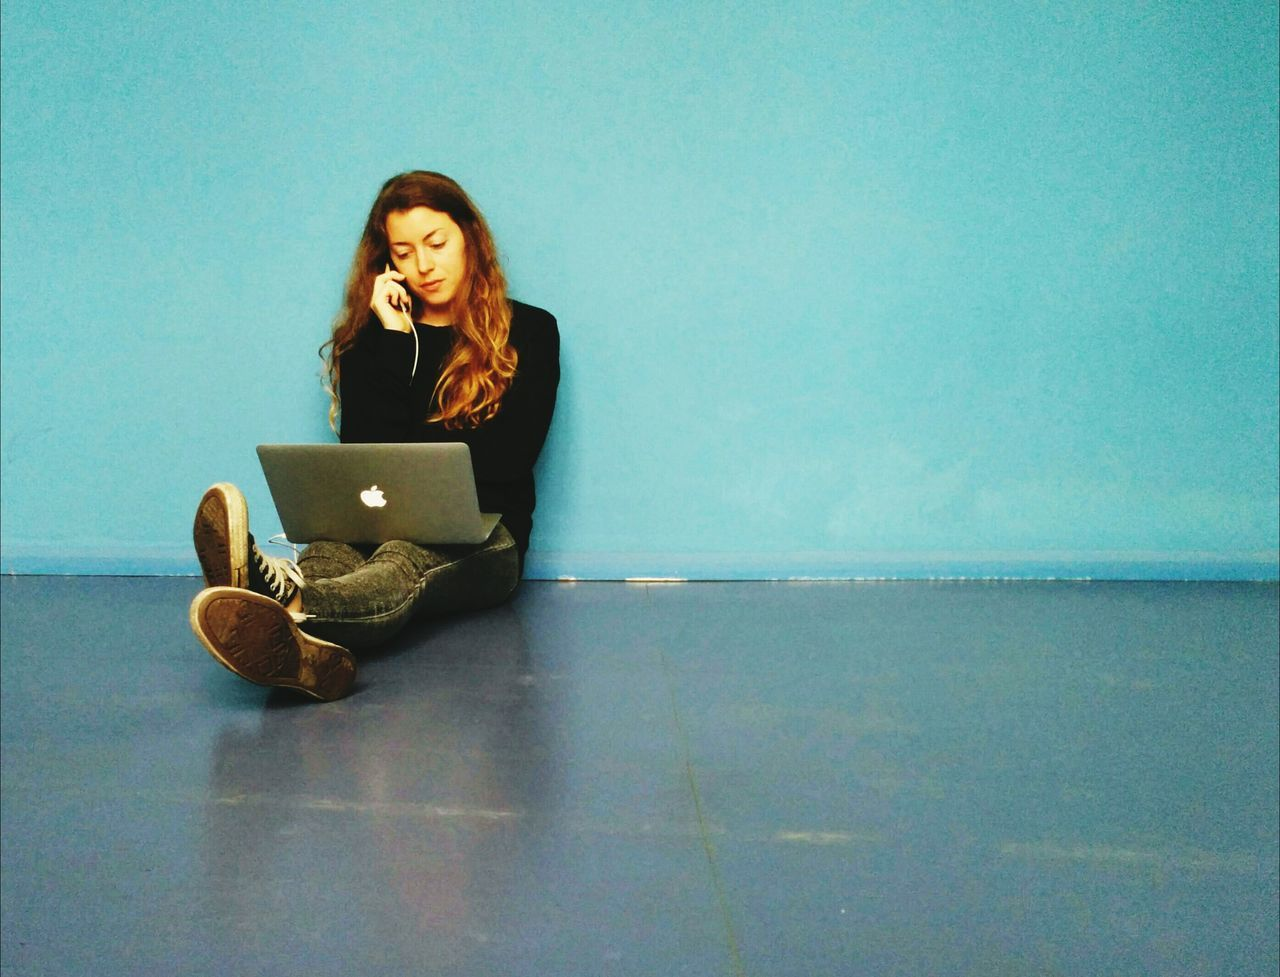 Young woman talking on phone while sitting on floor with laptop